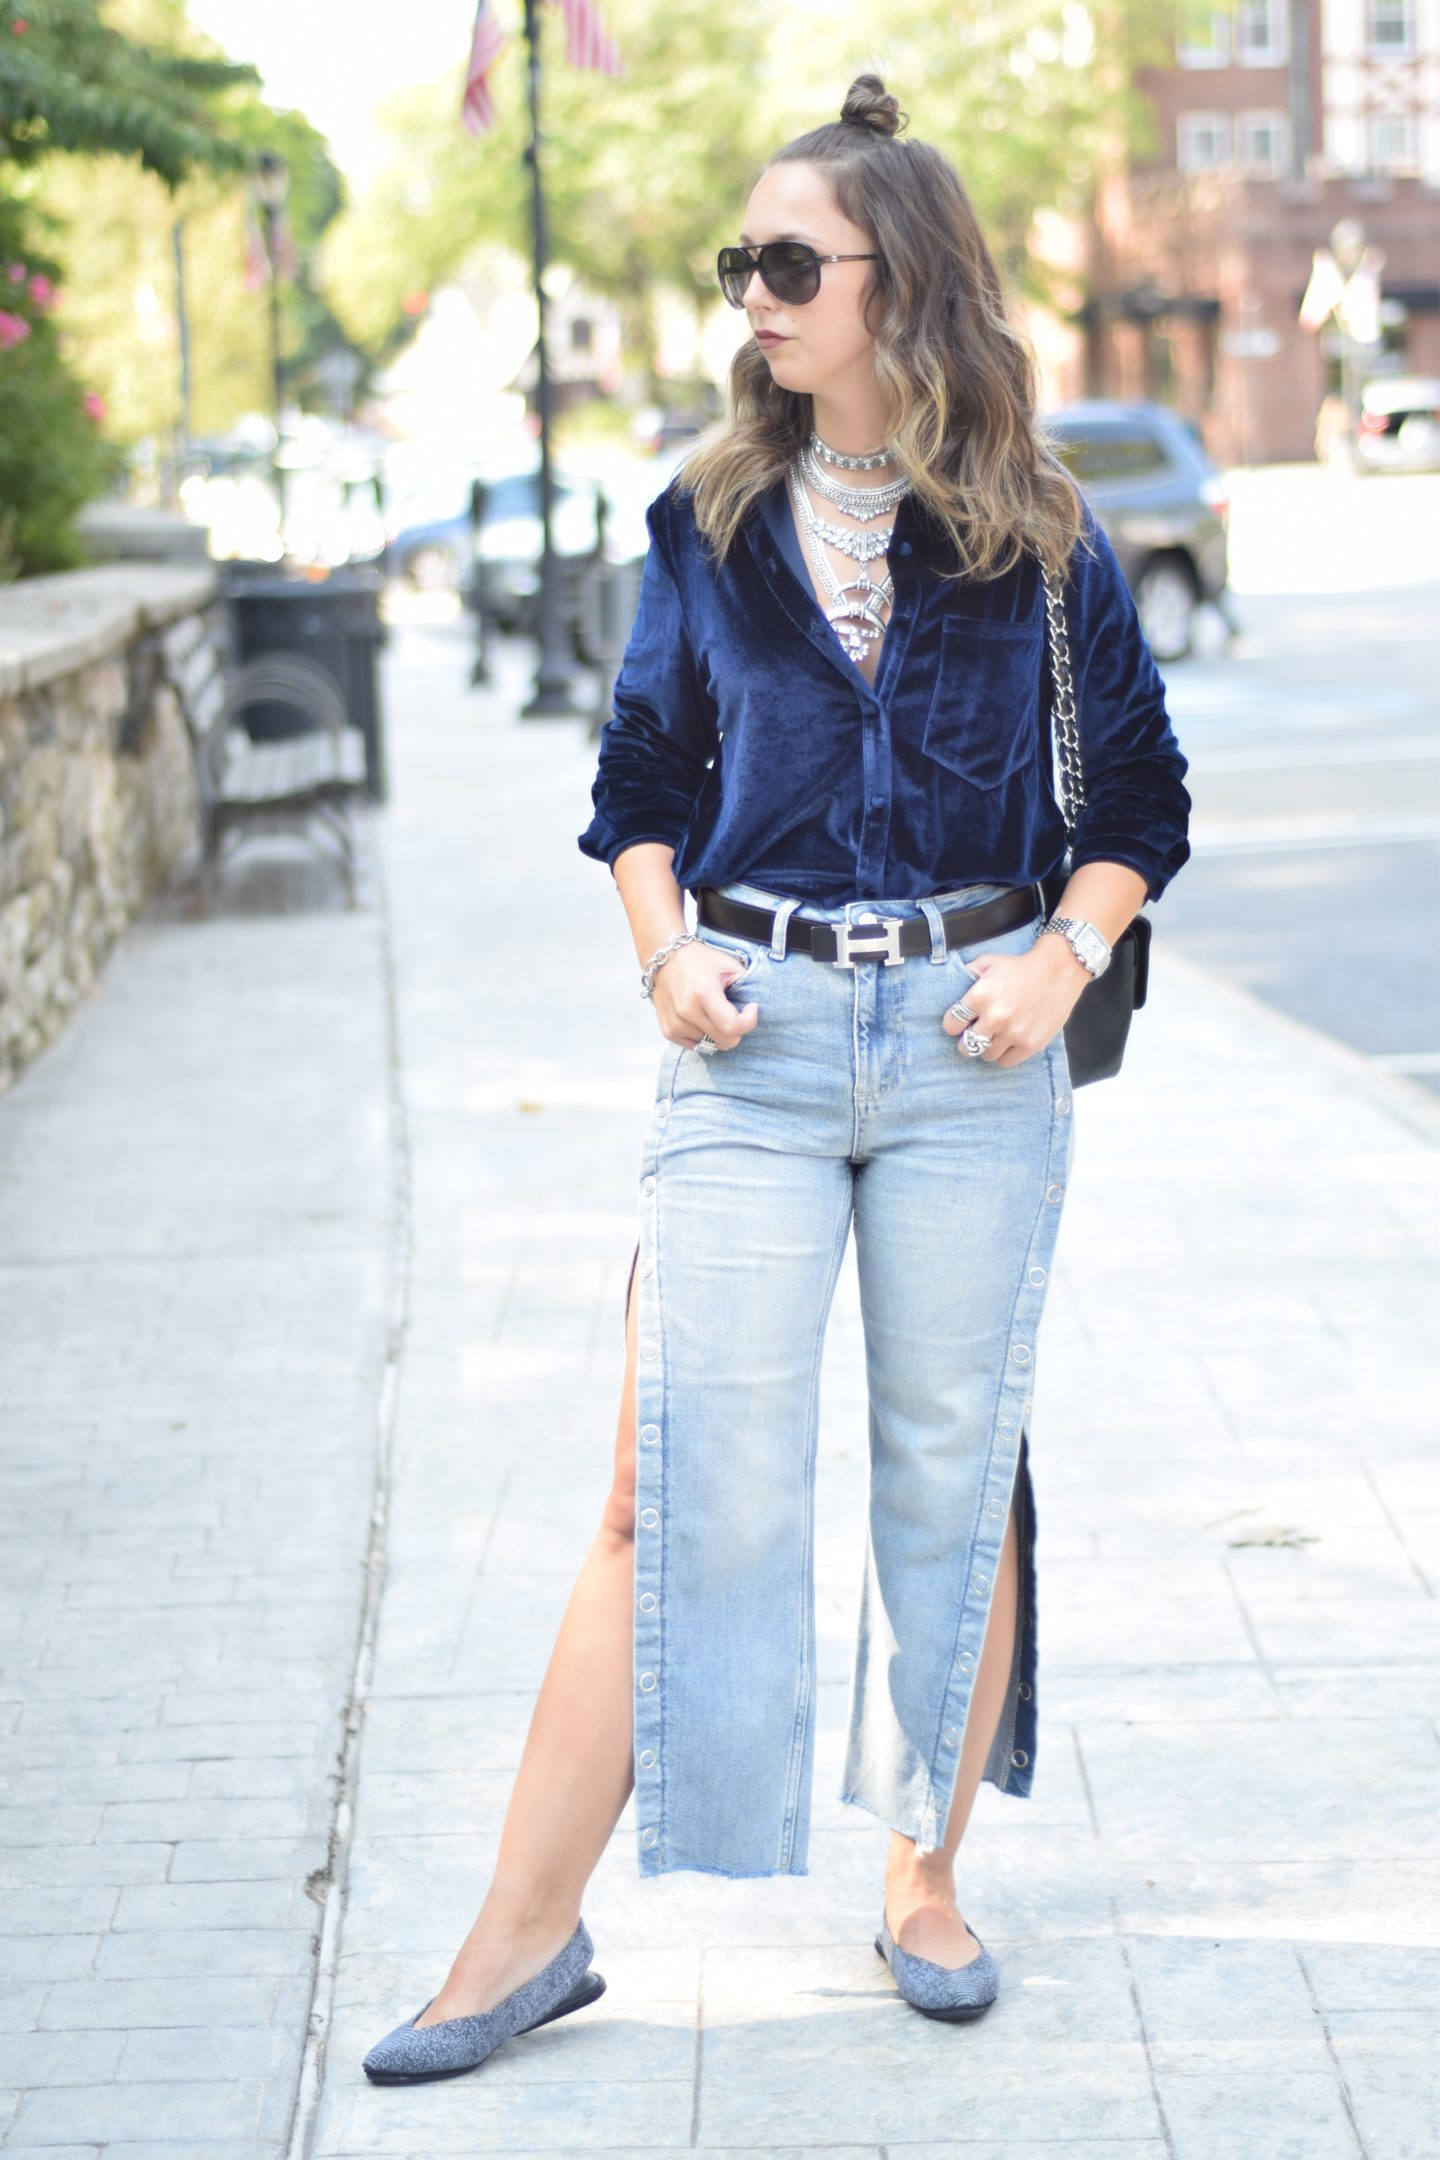 Westchester-New York-Street Style-Advice-Blogger